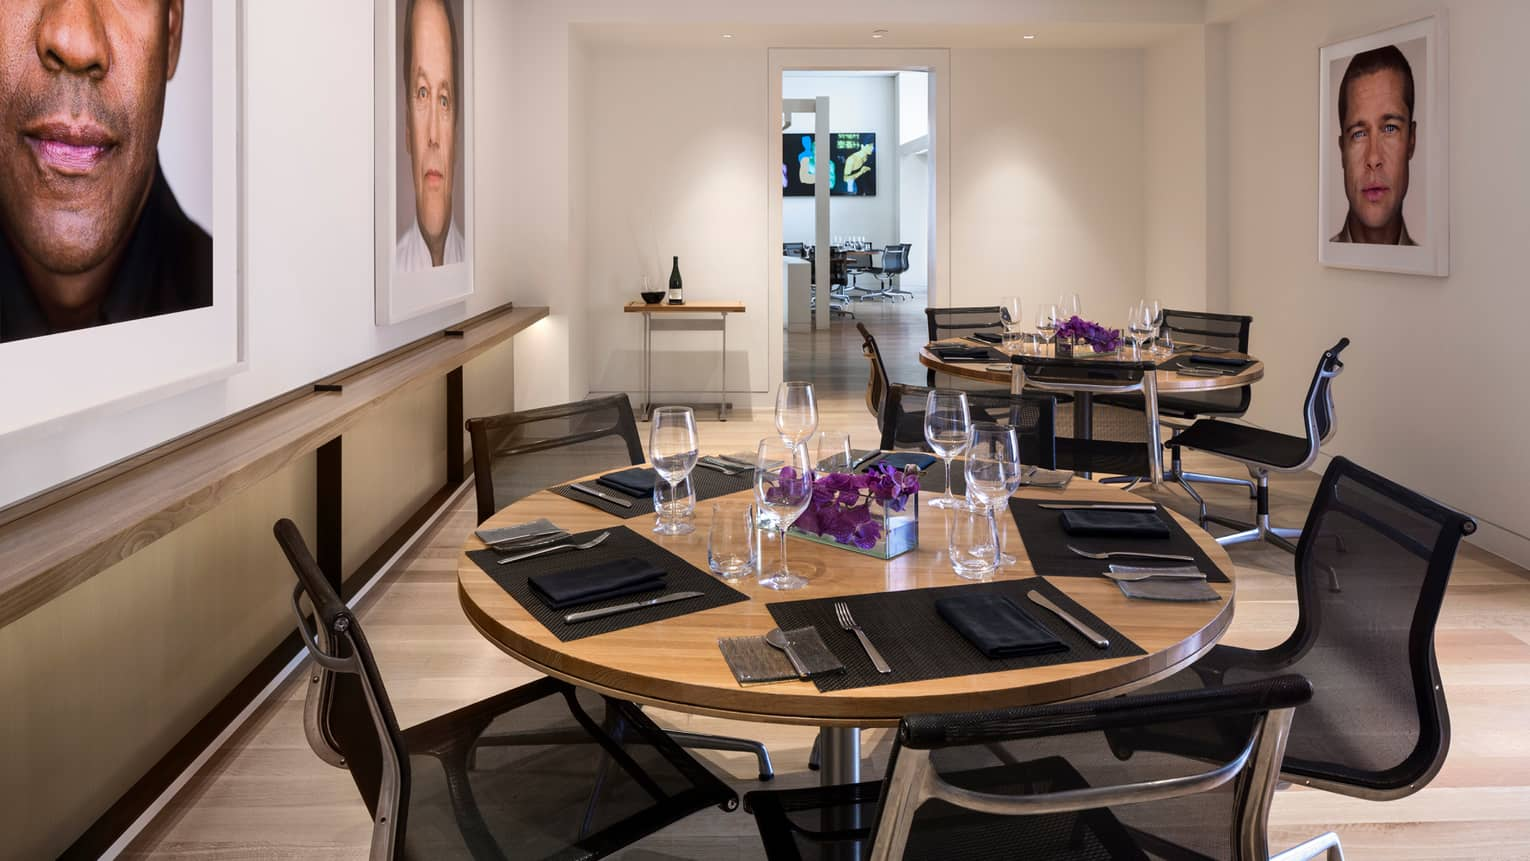 Petit Cut round dining, meeting table under framed prints of Hollywood stars